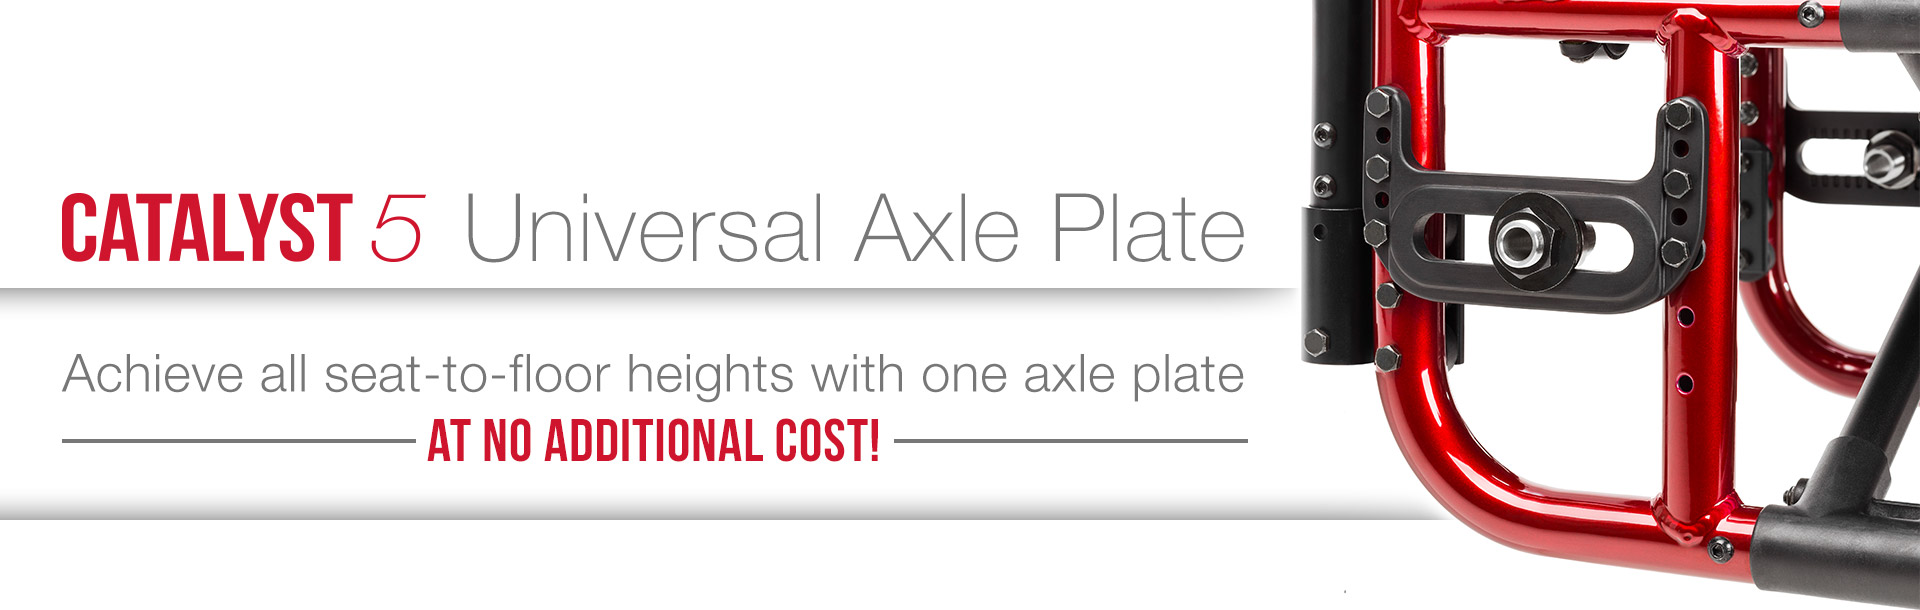 Catalyst Universal Axle Plate